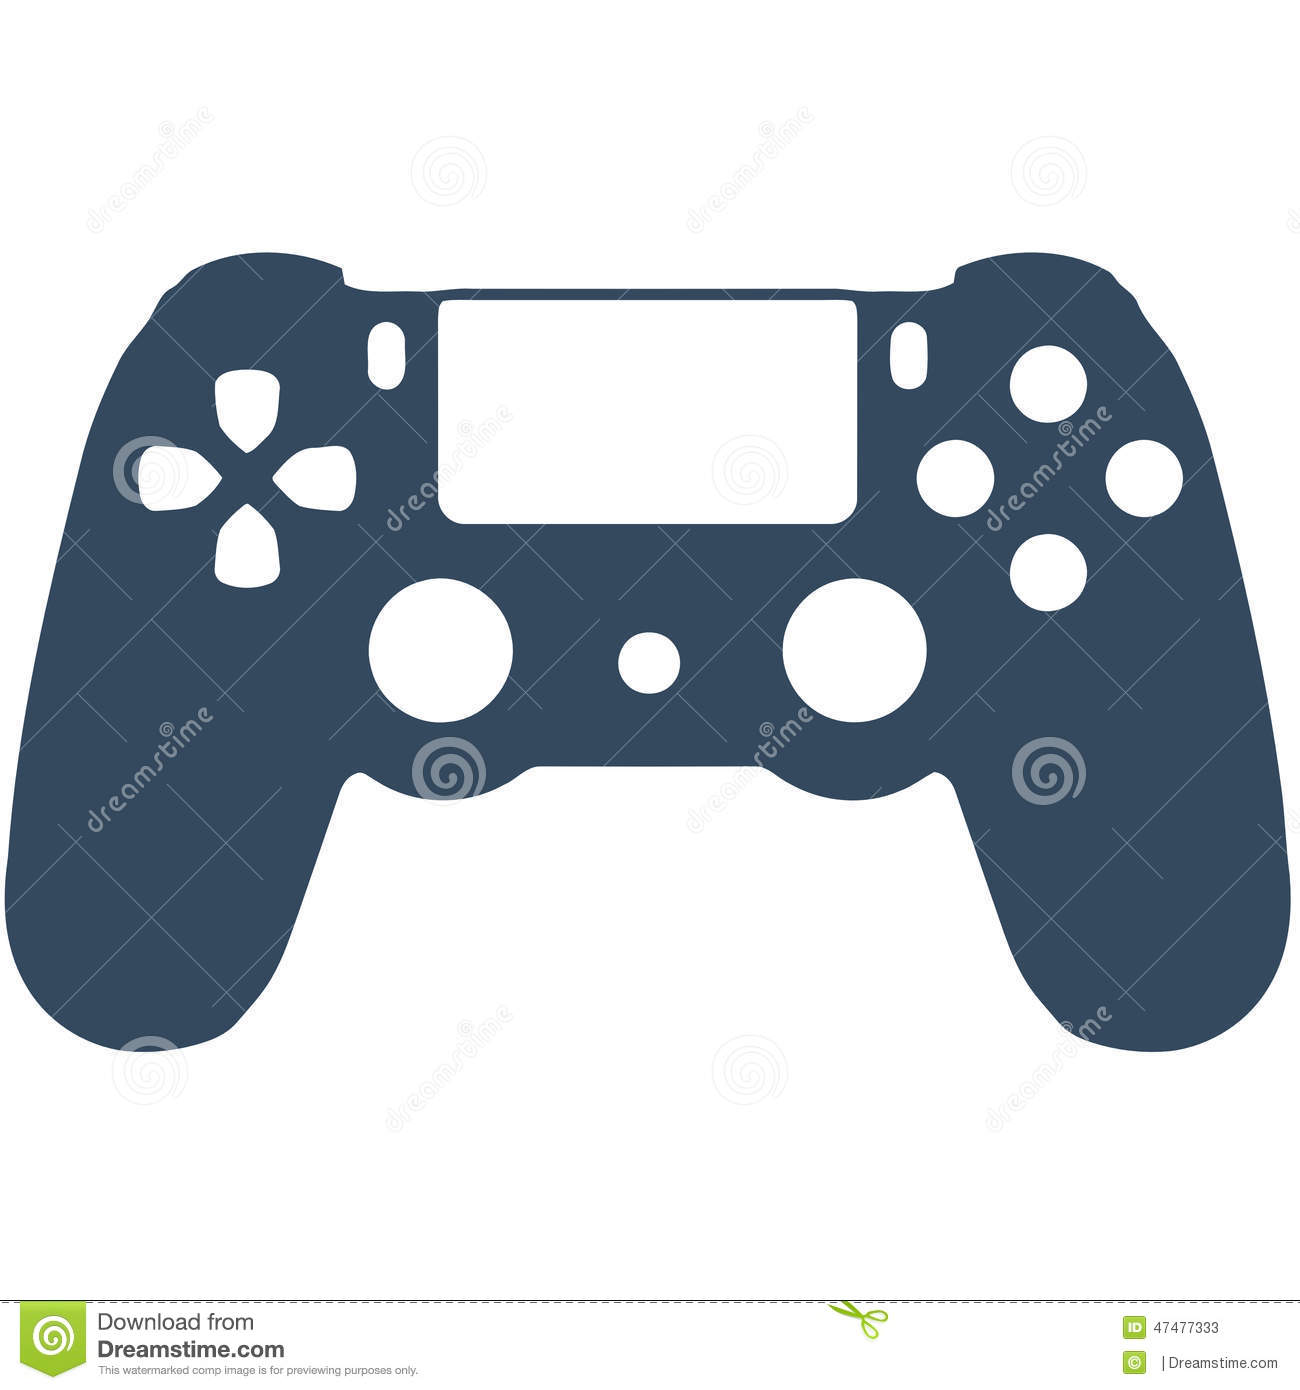 ps4 game controller stock illustration image 47477333 weasel face clipart Shark Clip Art